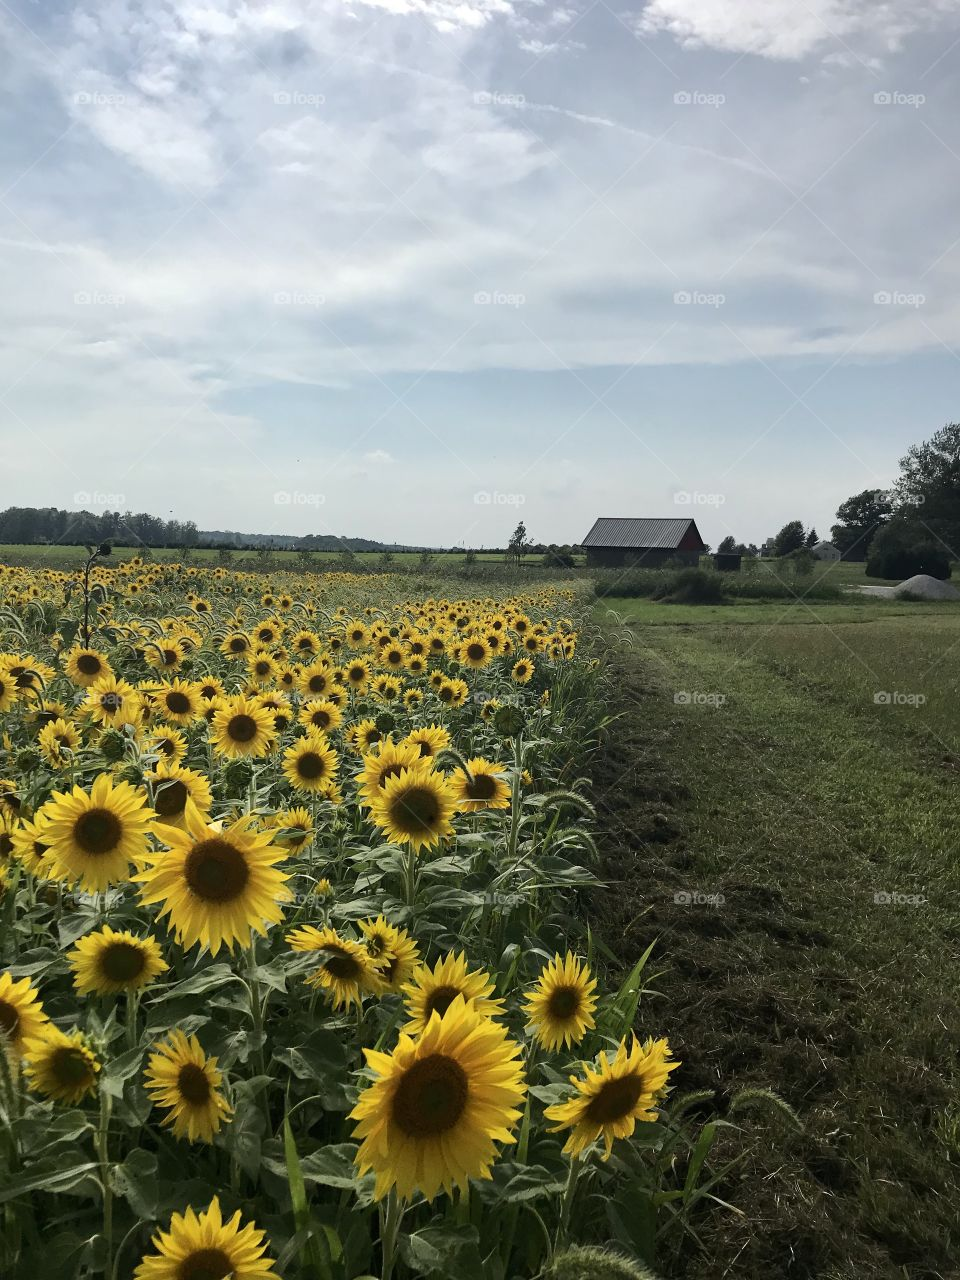 Sunflowers at Red Eagle